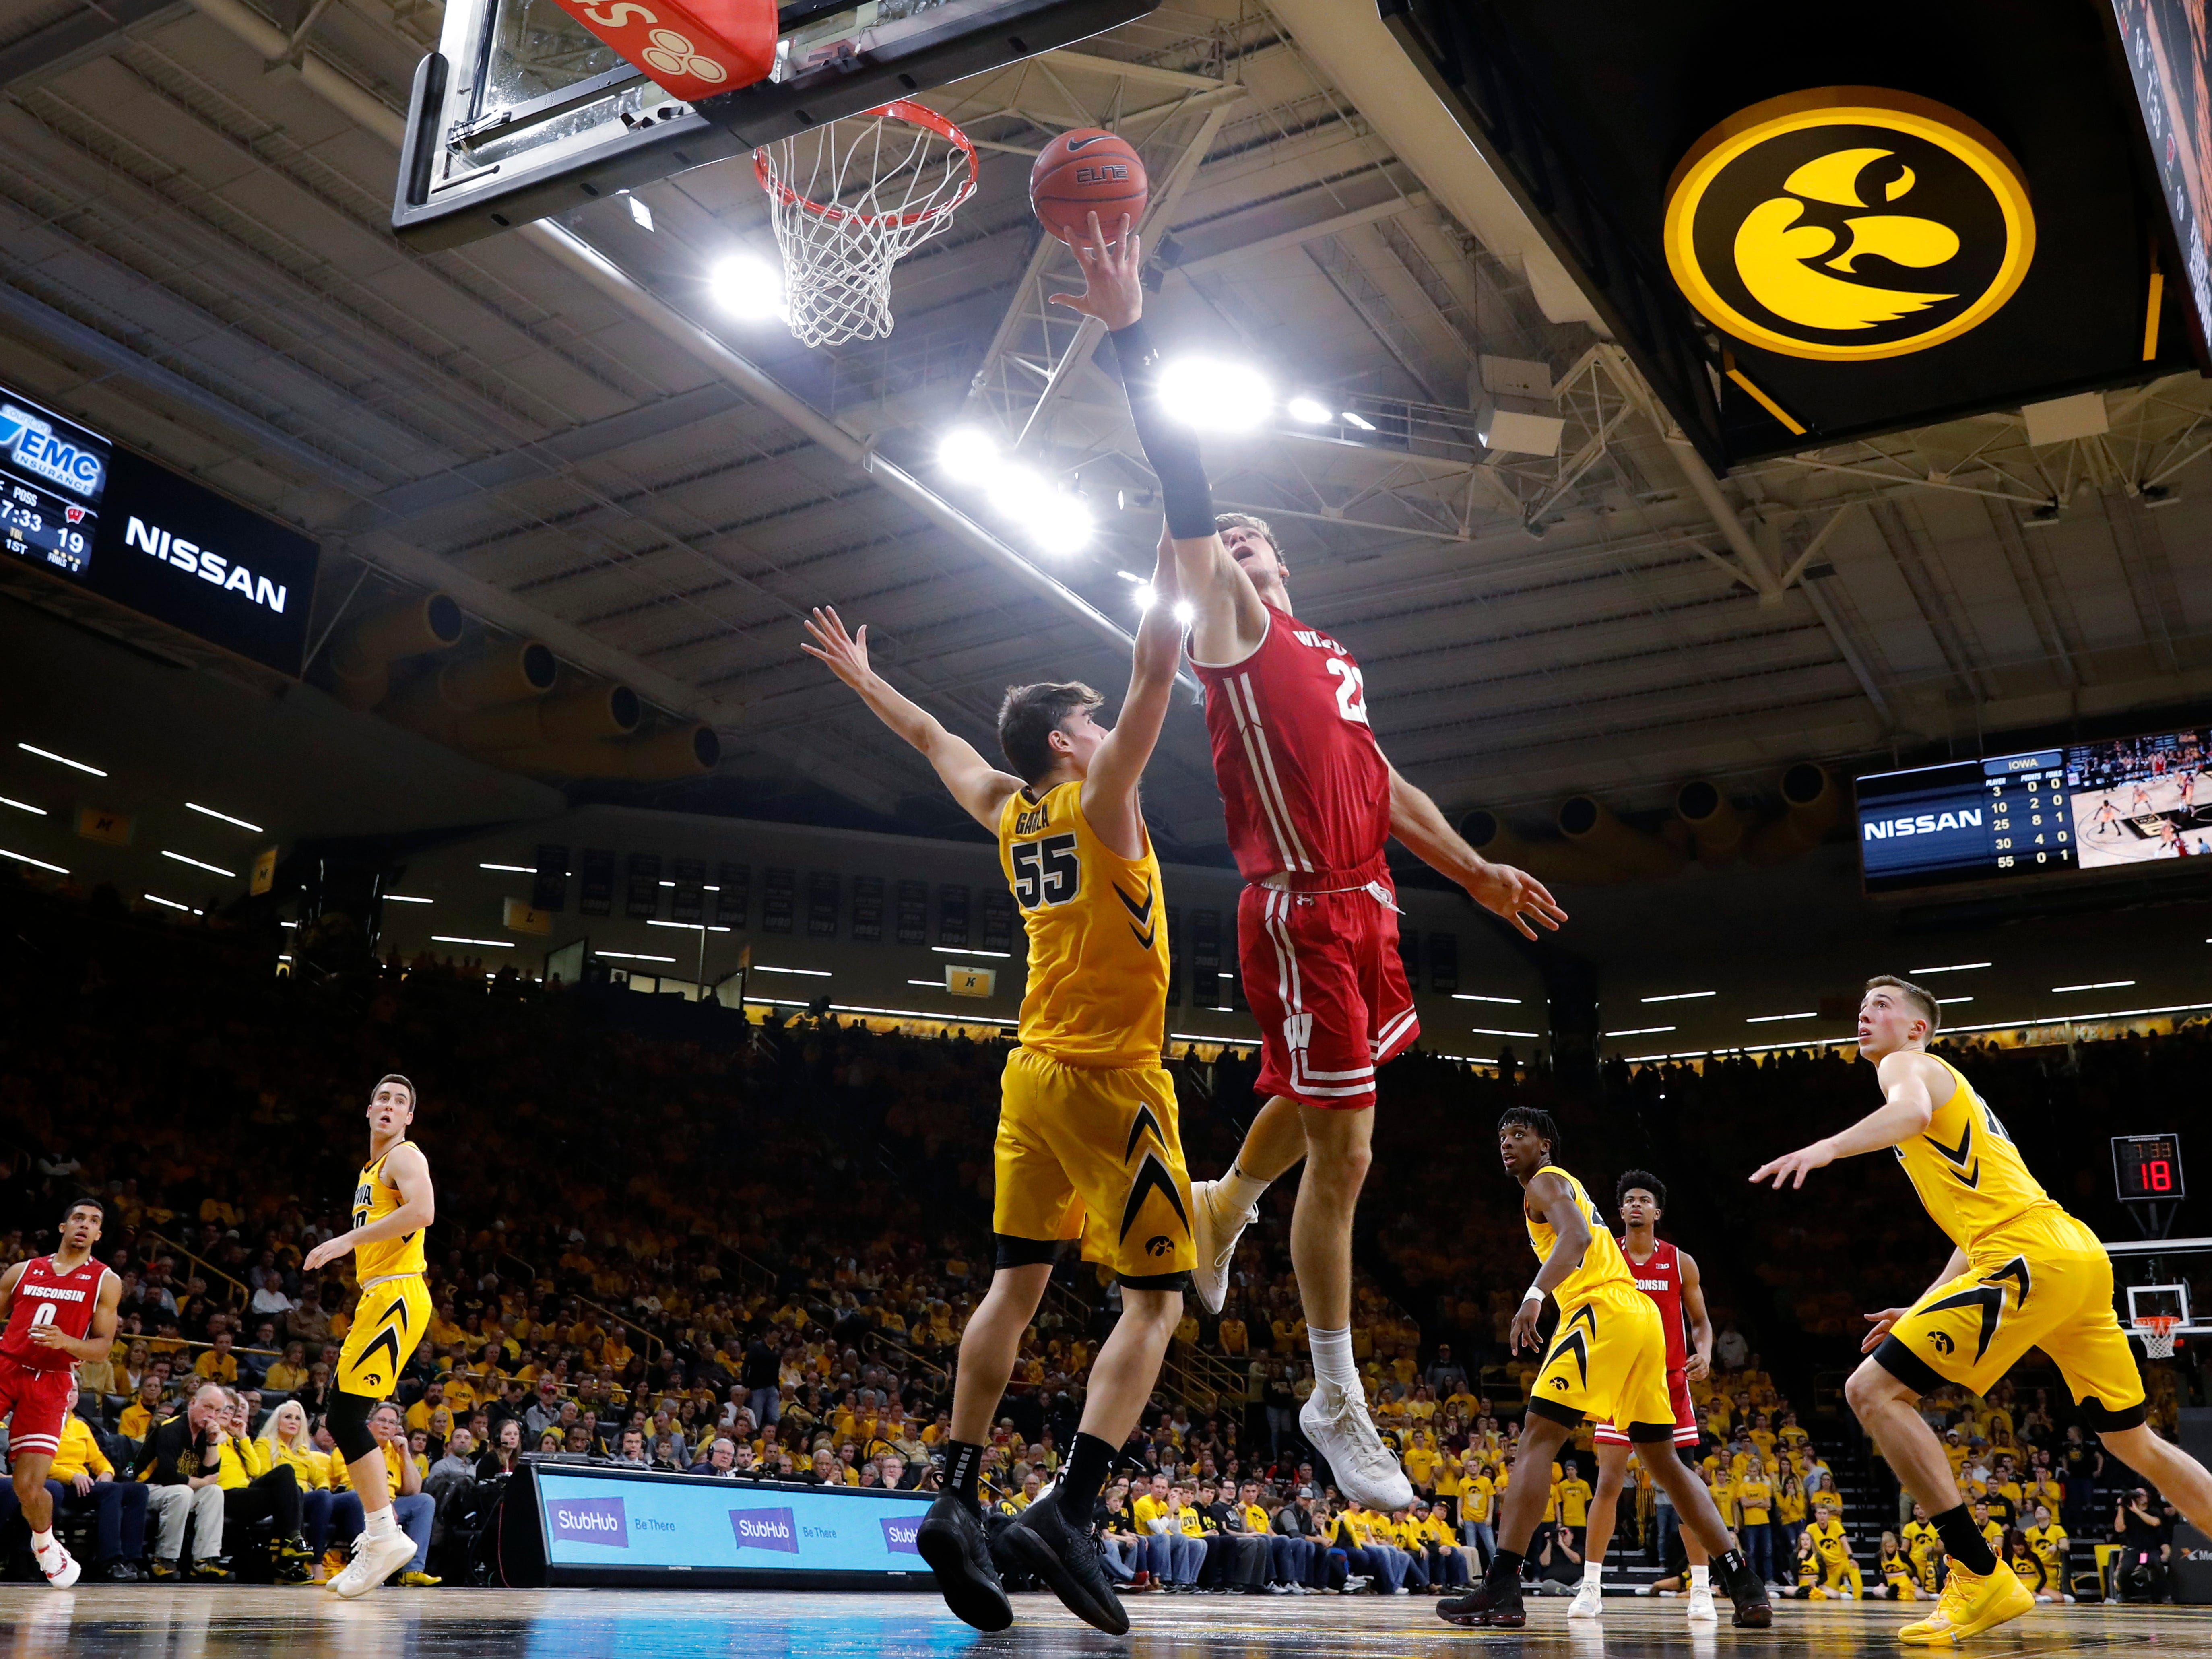 Wisconsin forward Ethan Happ goes up for a underhanded lay in against Iowa forward Luka Garza during the first half Friday night.